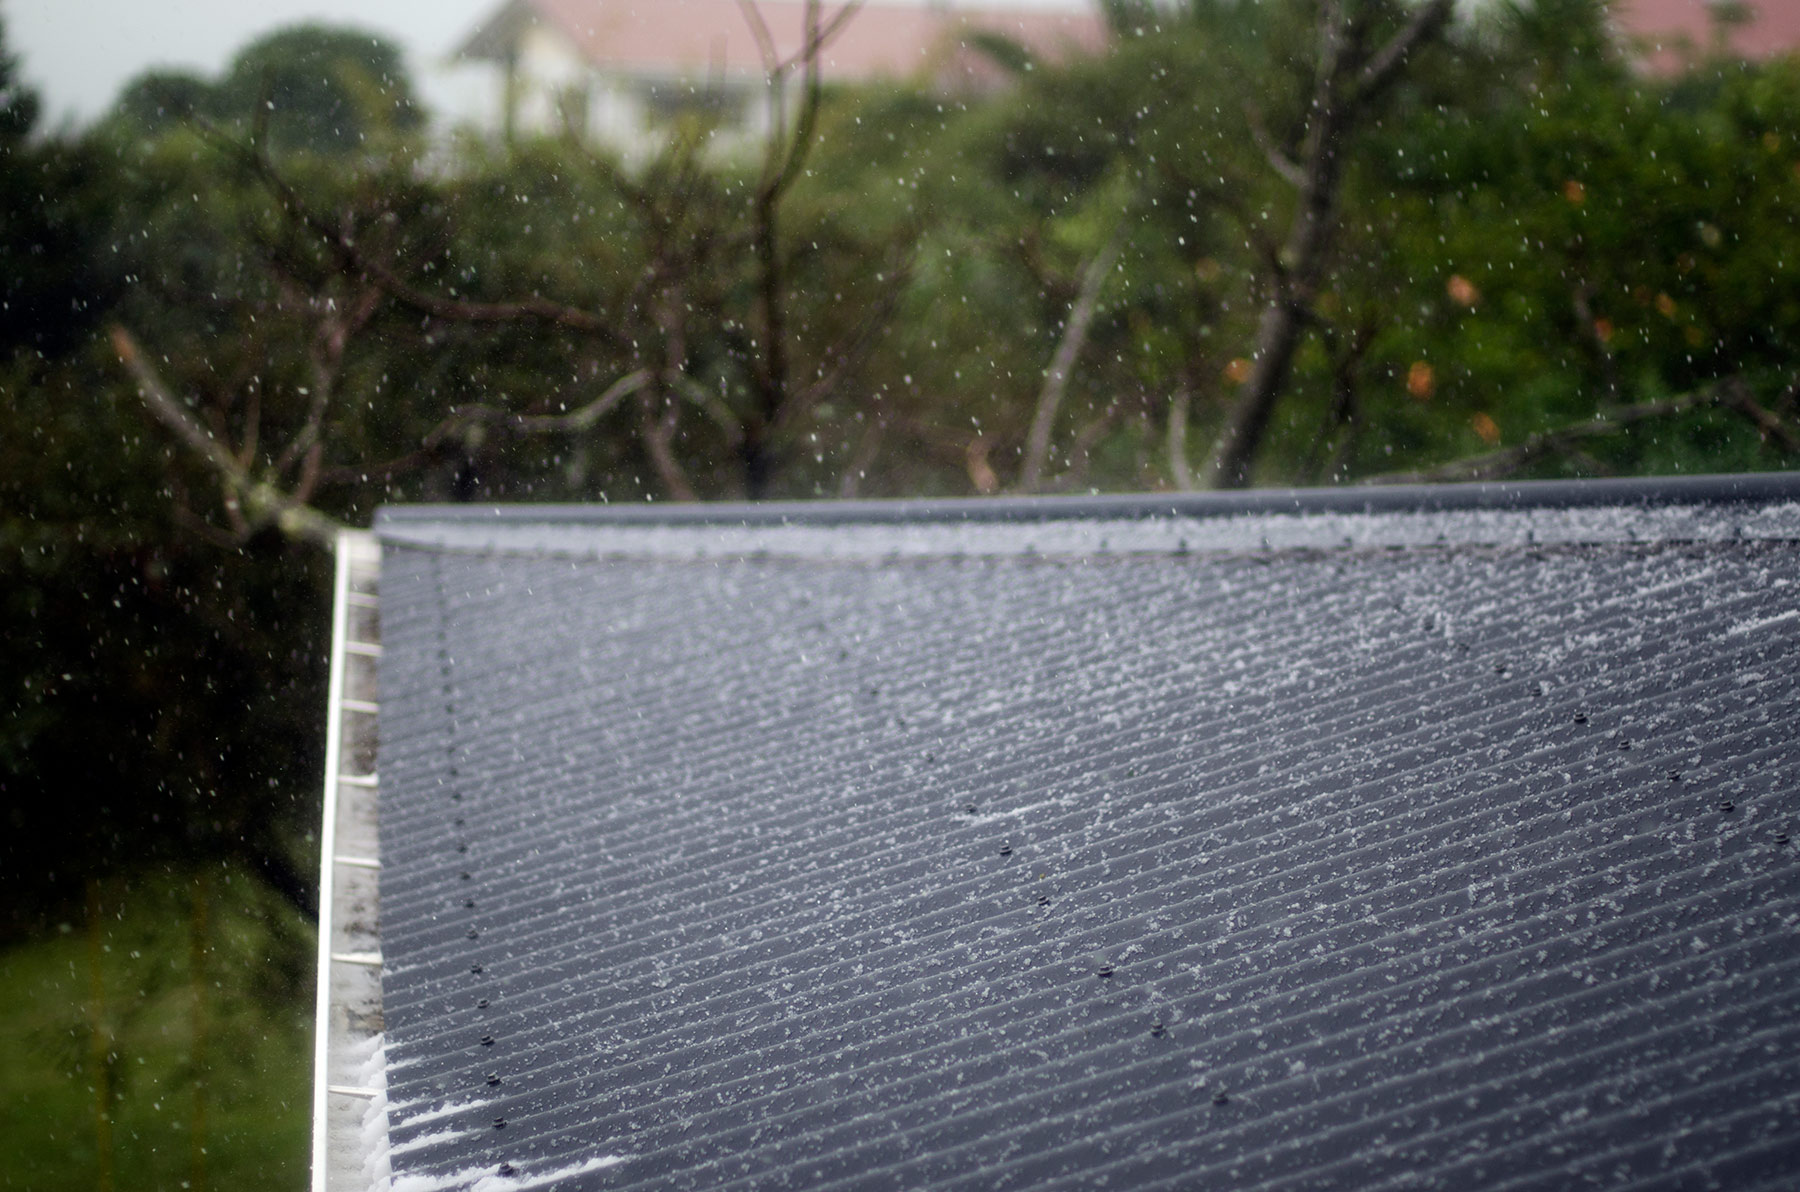 Rooftop being struck with hail during a hail storm